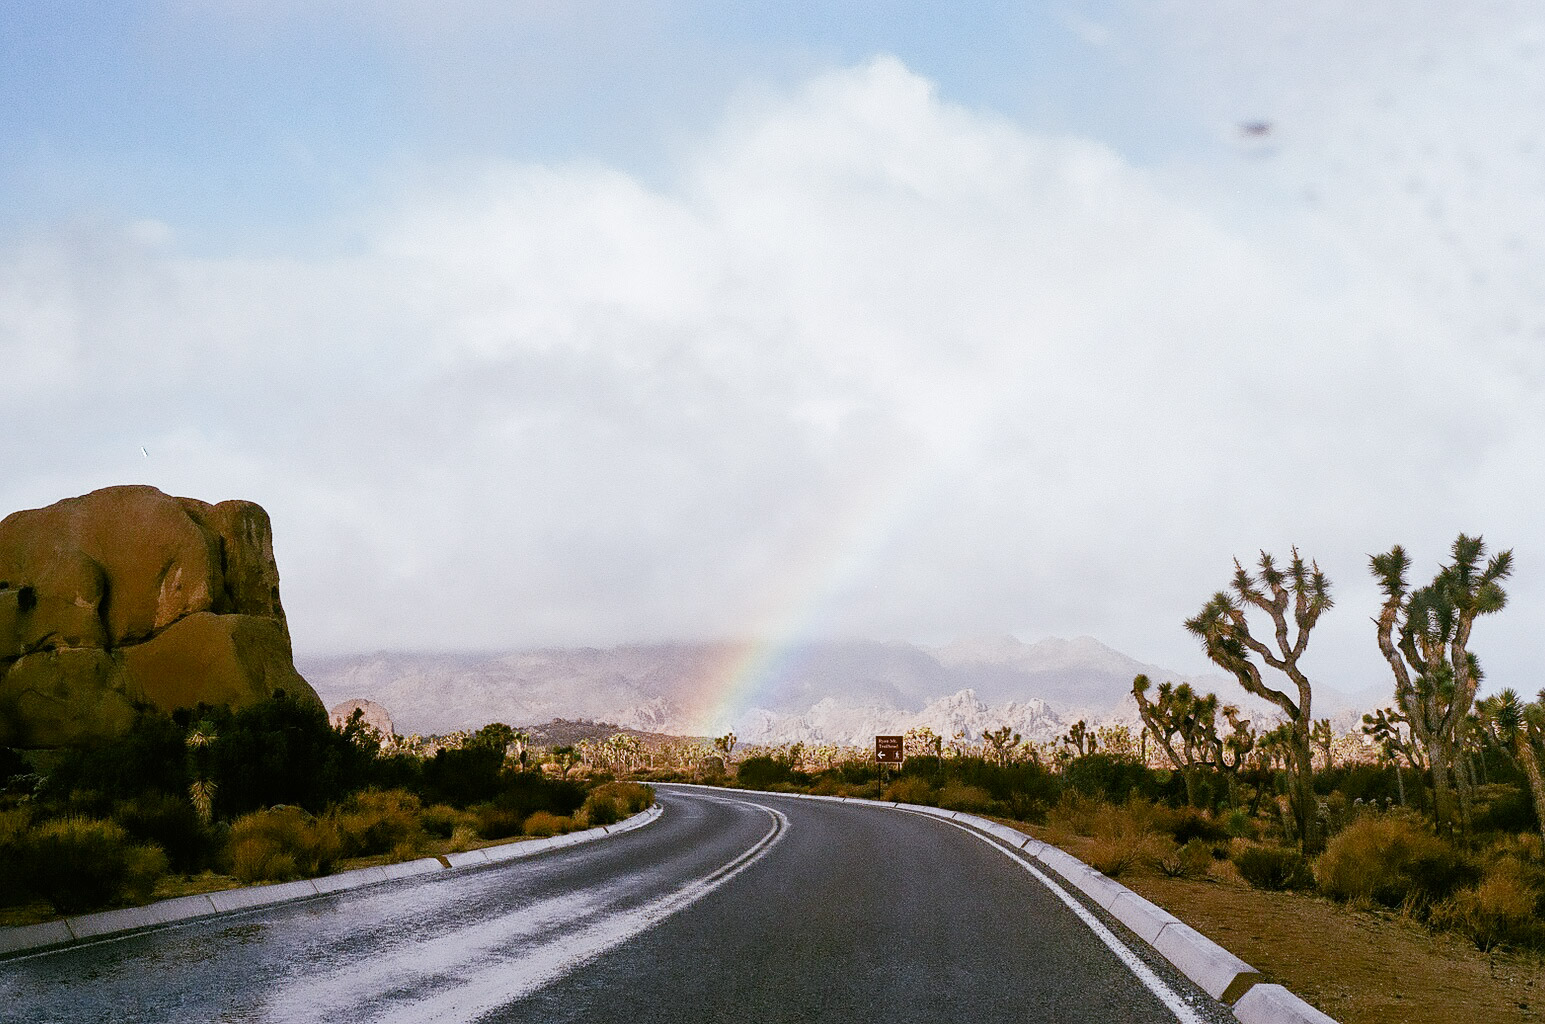 We've never seen as many full, complete rainbows as we do on this trip. A good omen for our new lives together?